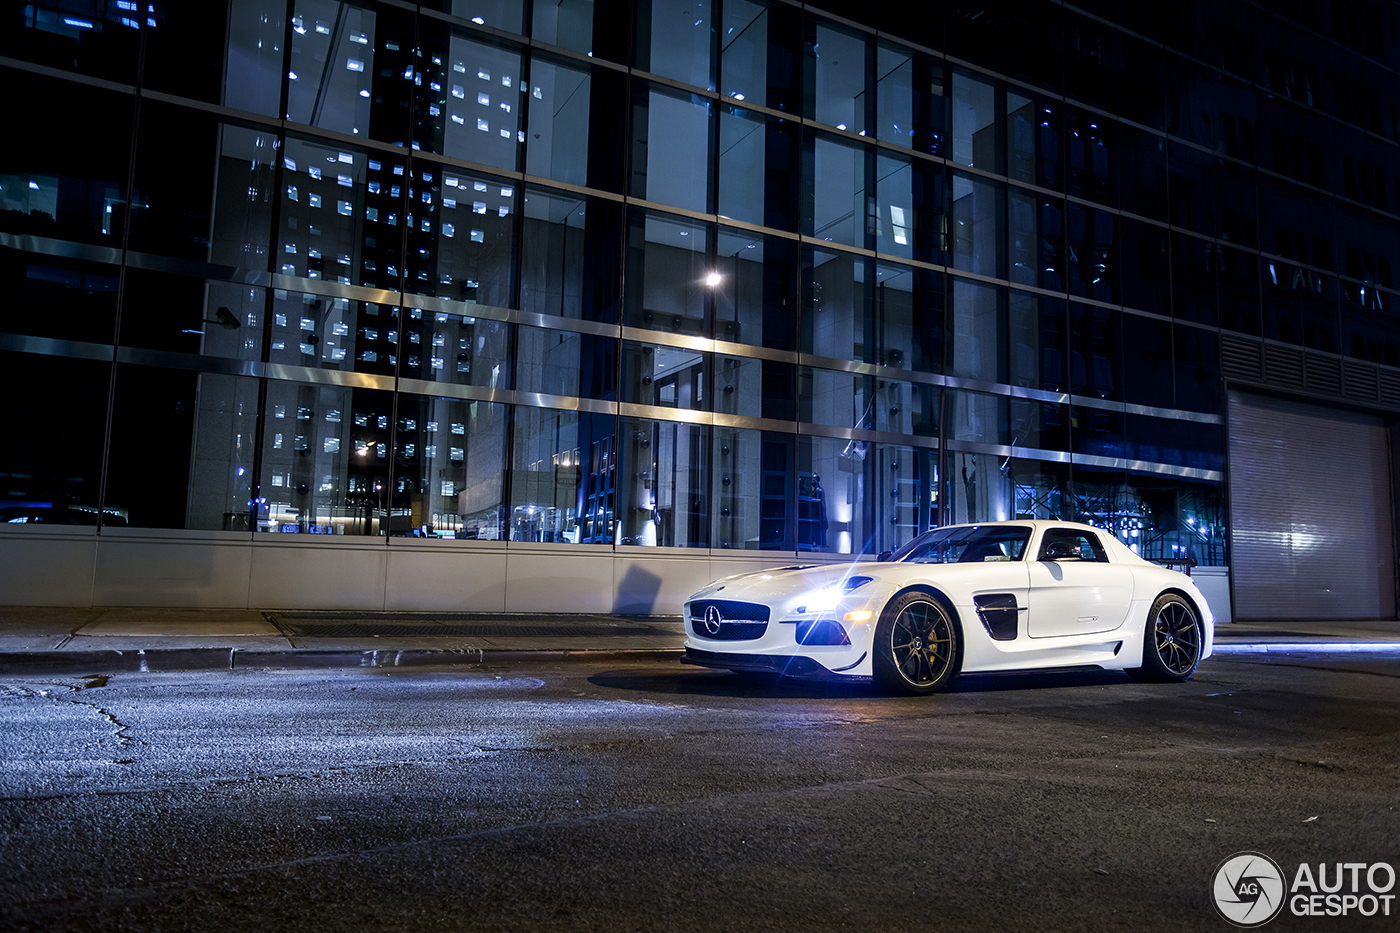 Mercedes benz sls amg black series in new york city at night for Mercedes benz of new york